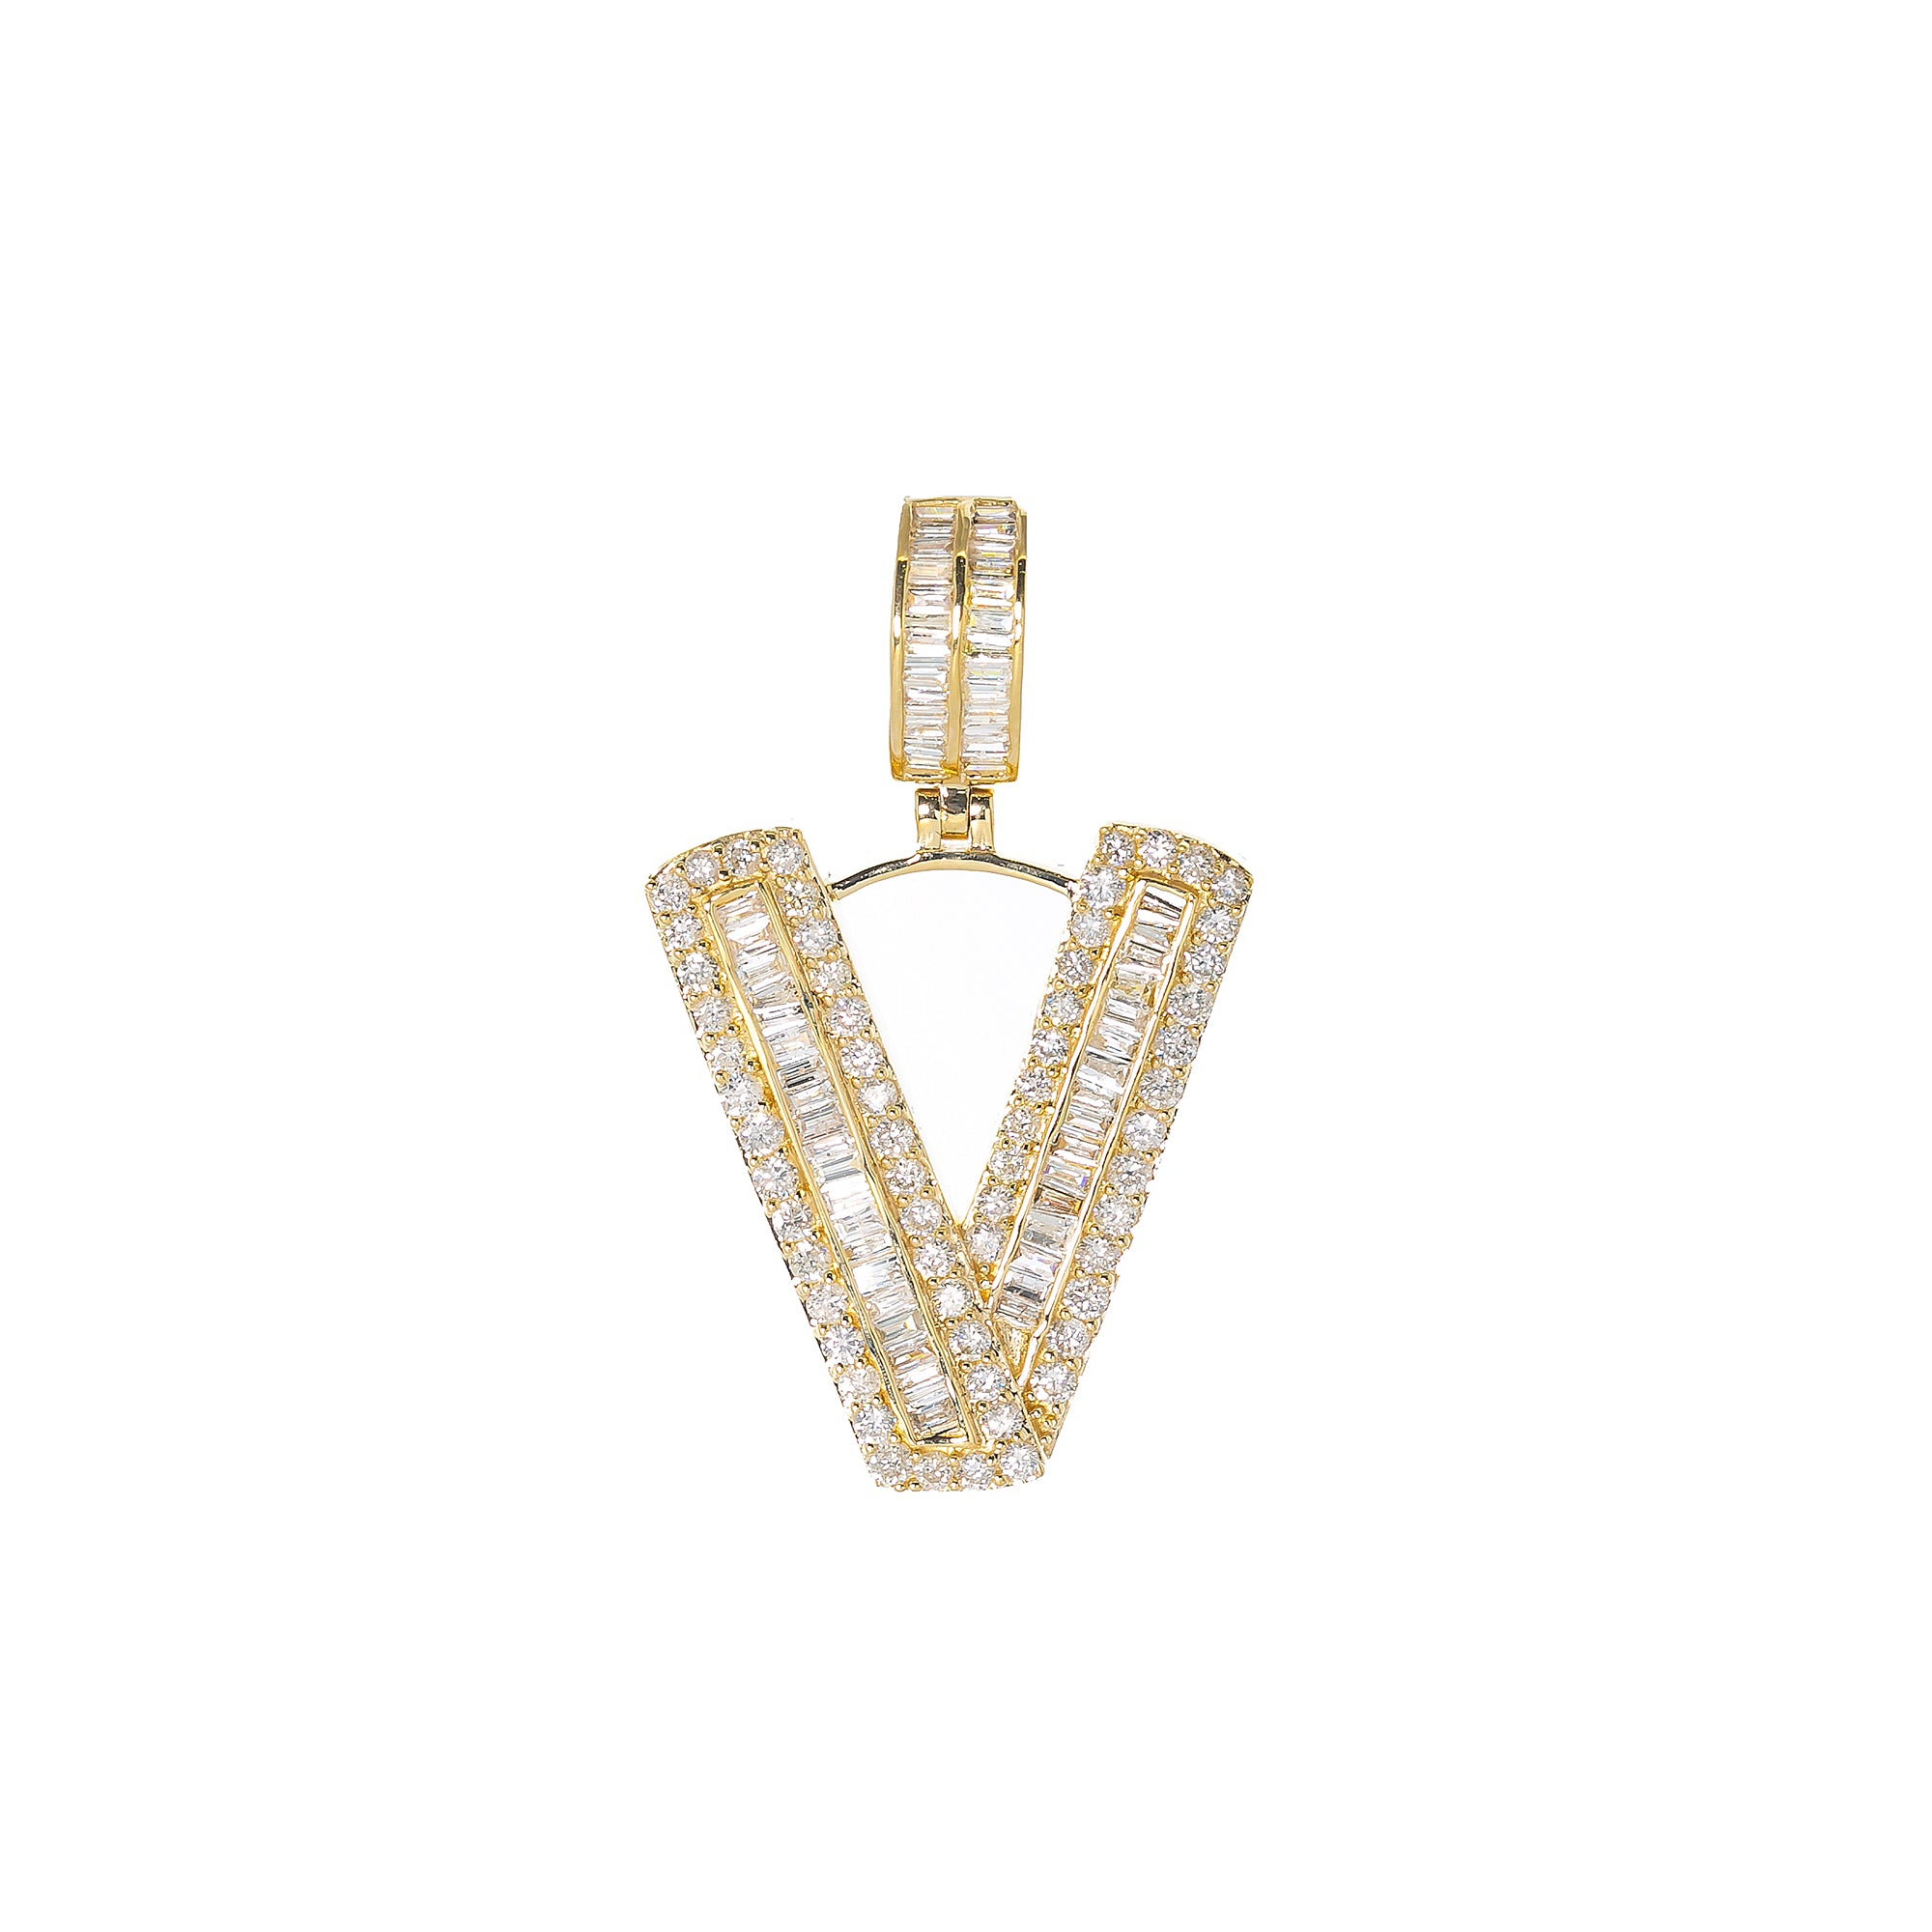 14K YELLOW GOLD UNISEX LETTER V WITH 2.25 CT DIAMONDS